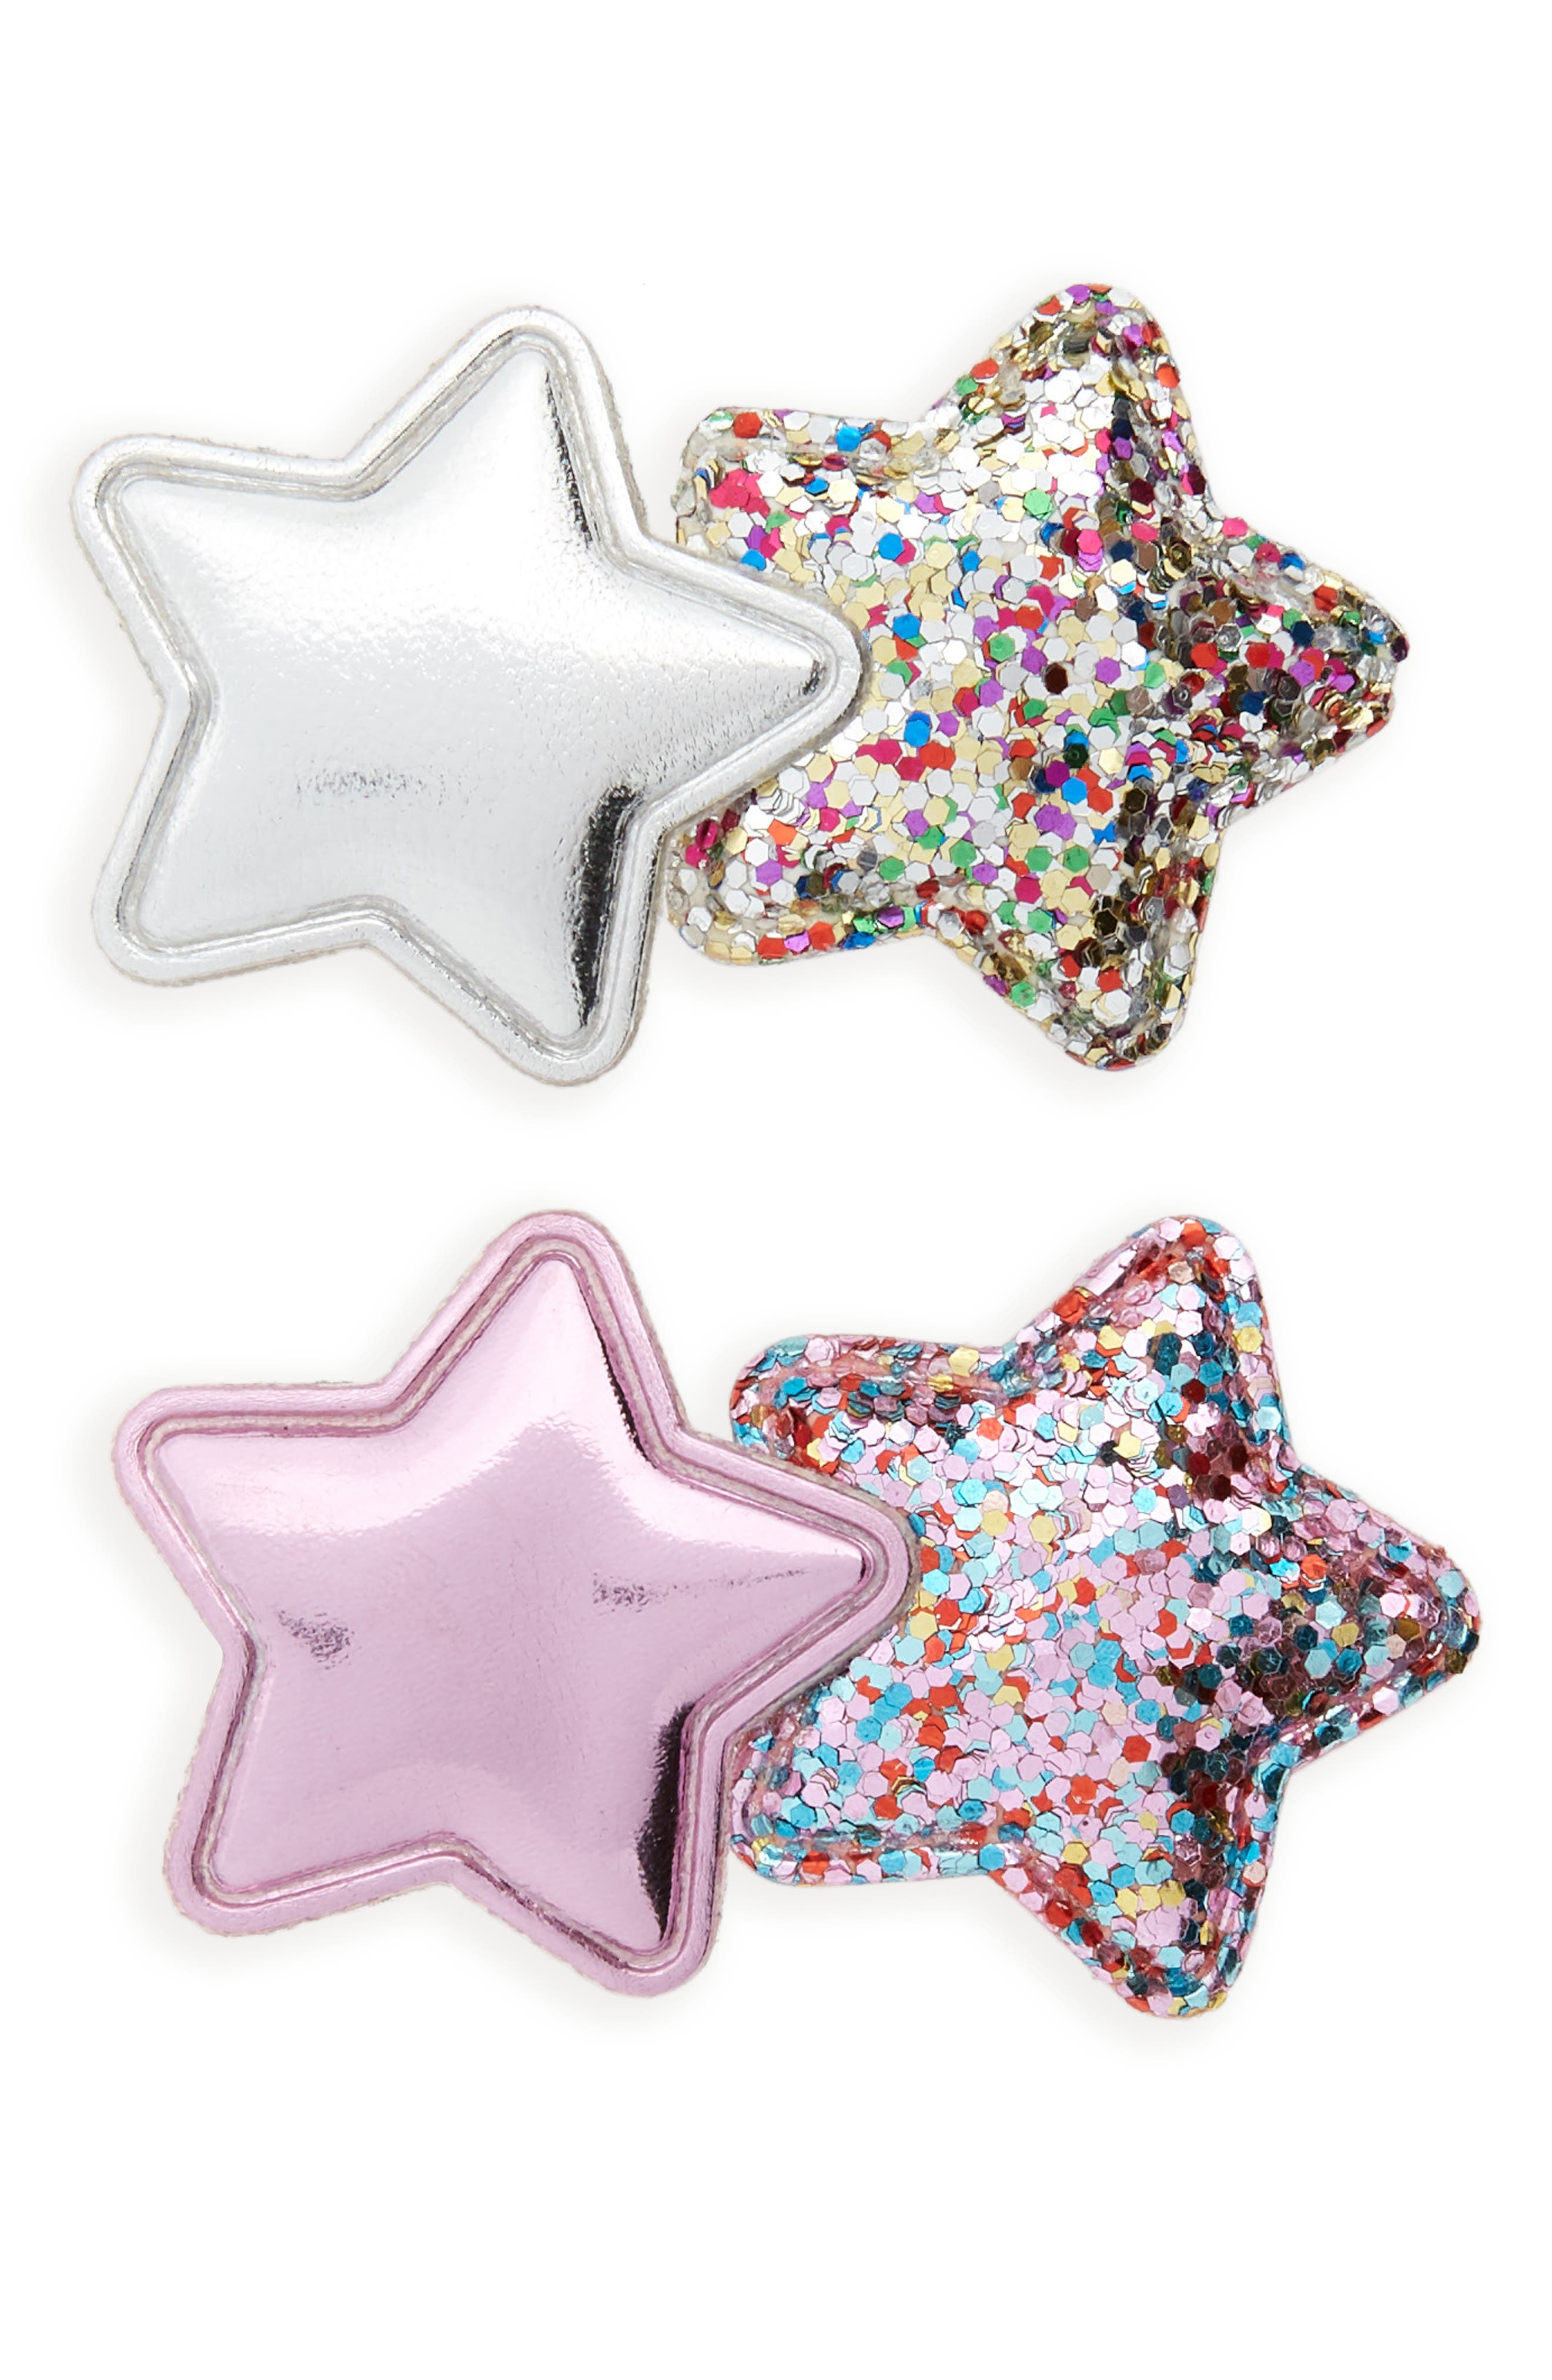 2-Pack Glitter Star Hair Clips,                         Main,                         color, SILVER/ PINK